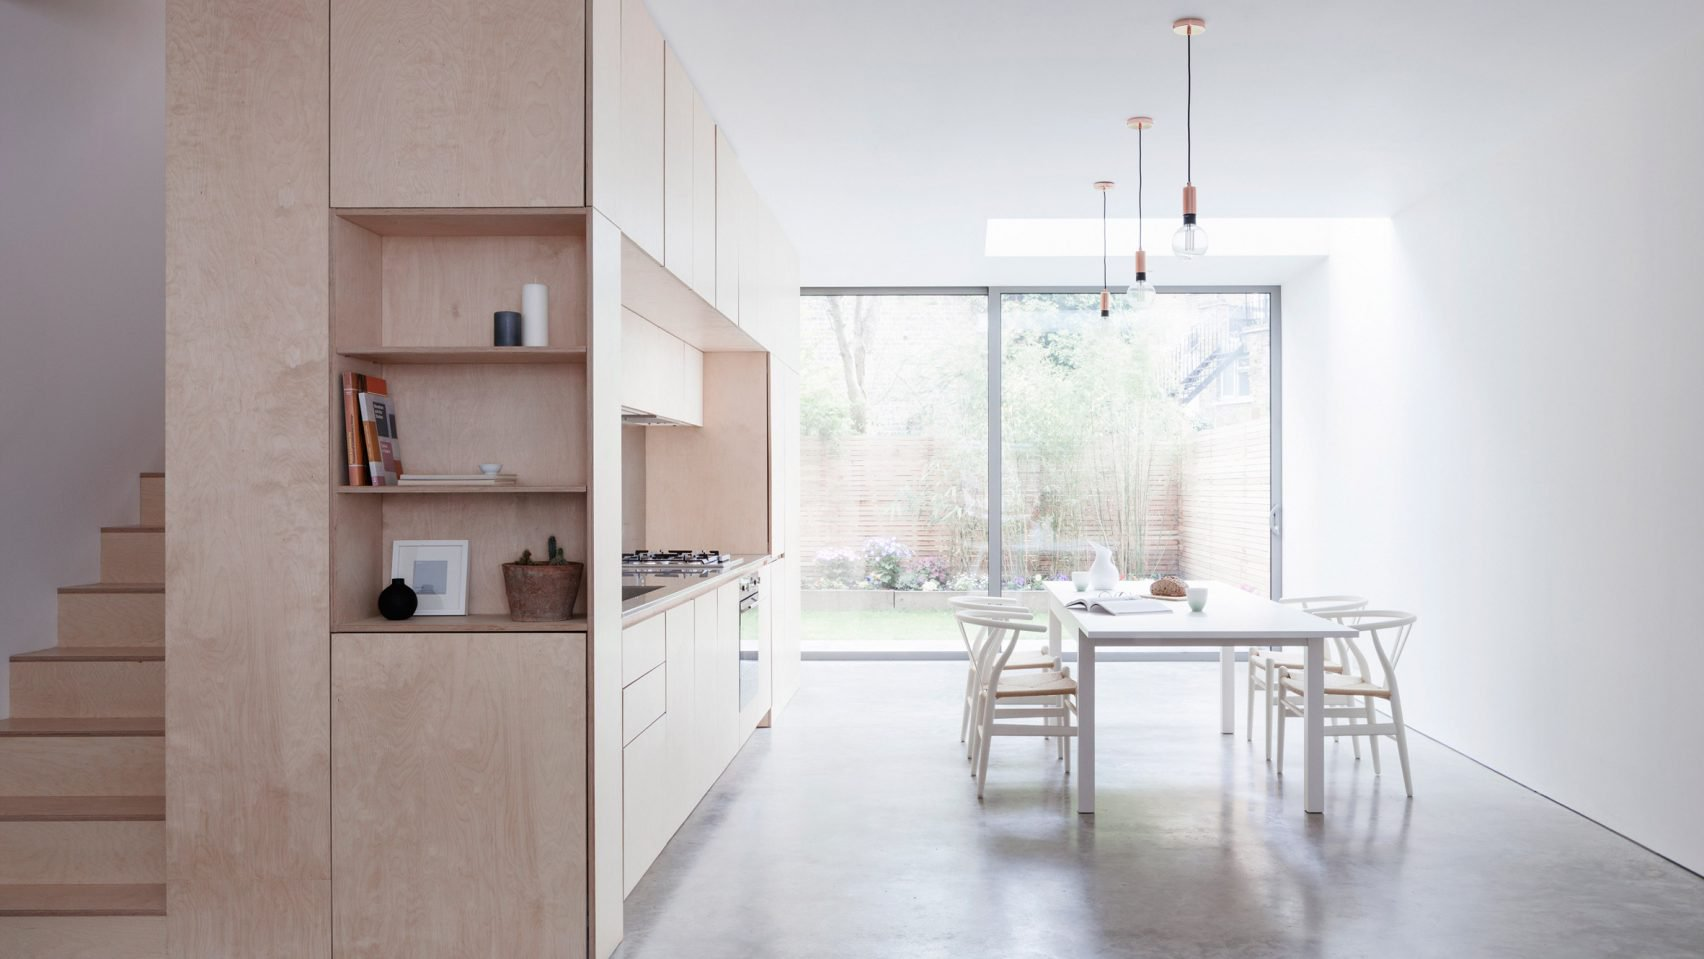 A minimalist home in London built around a plywood kitchen 1